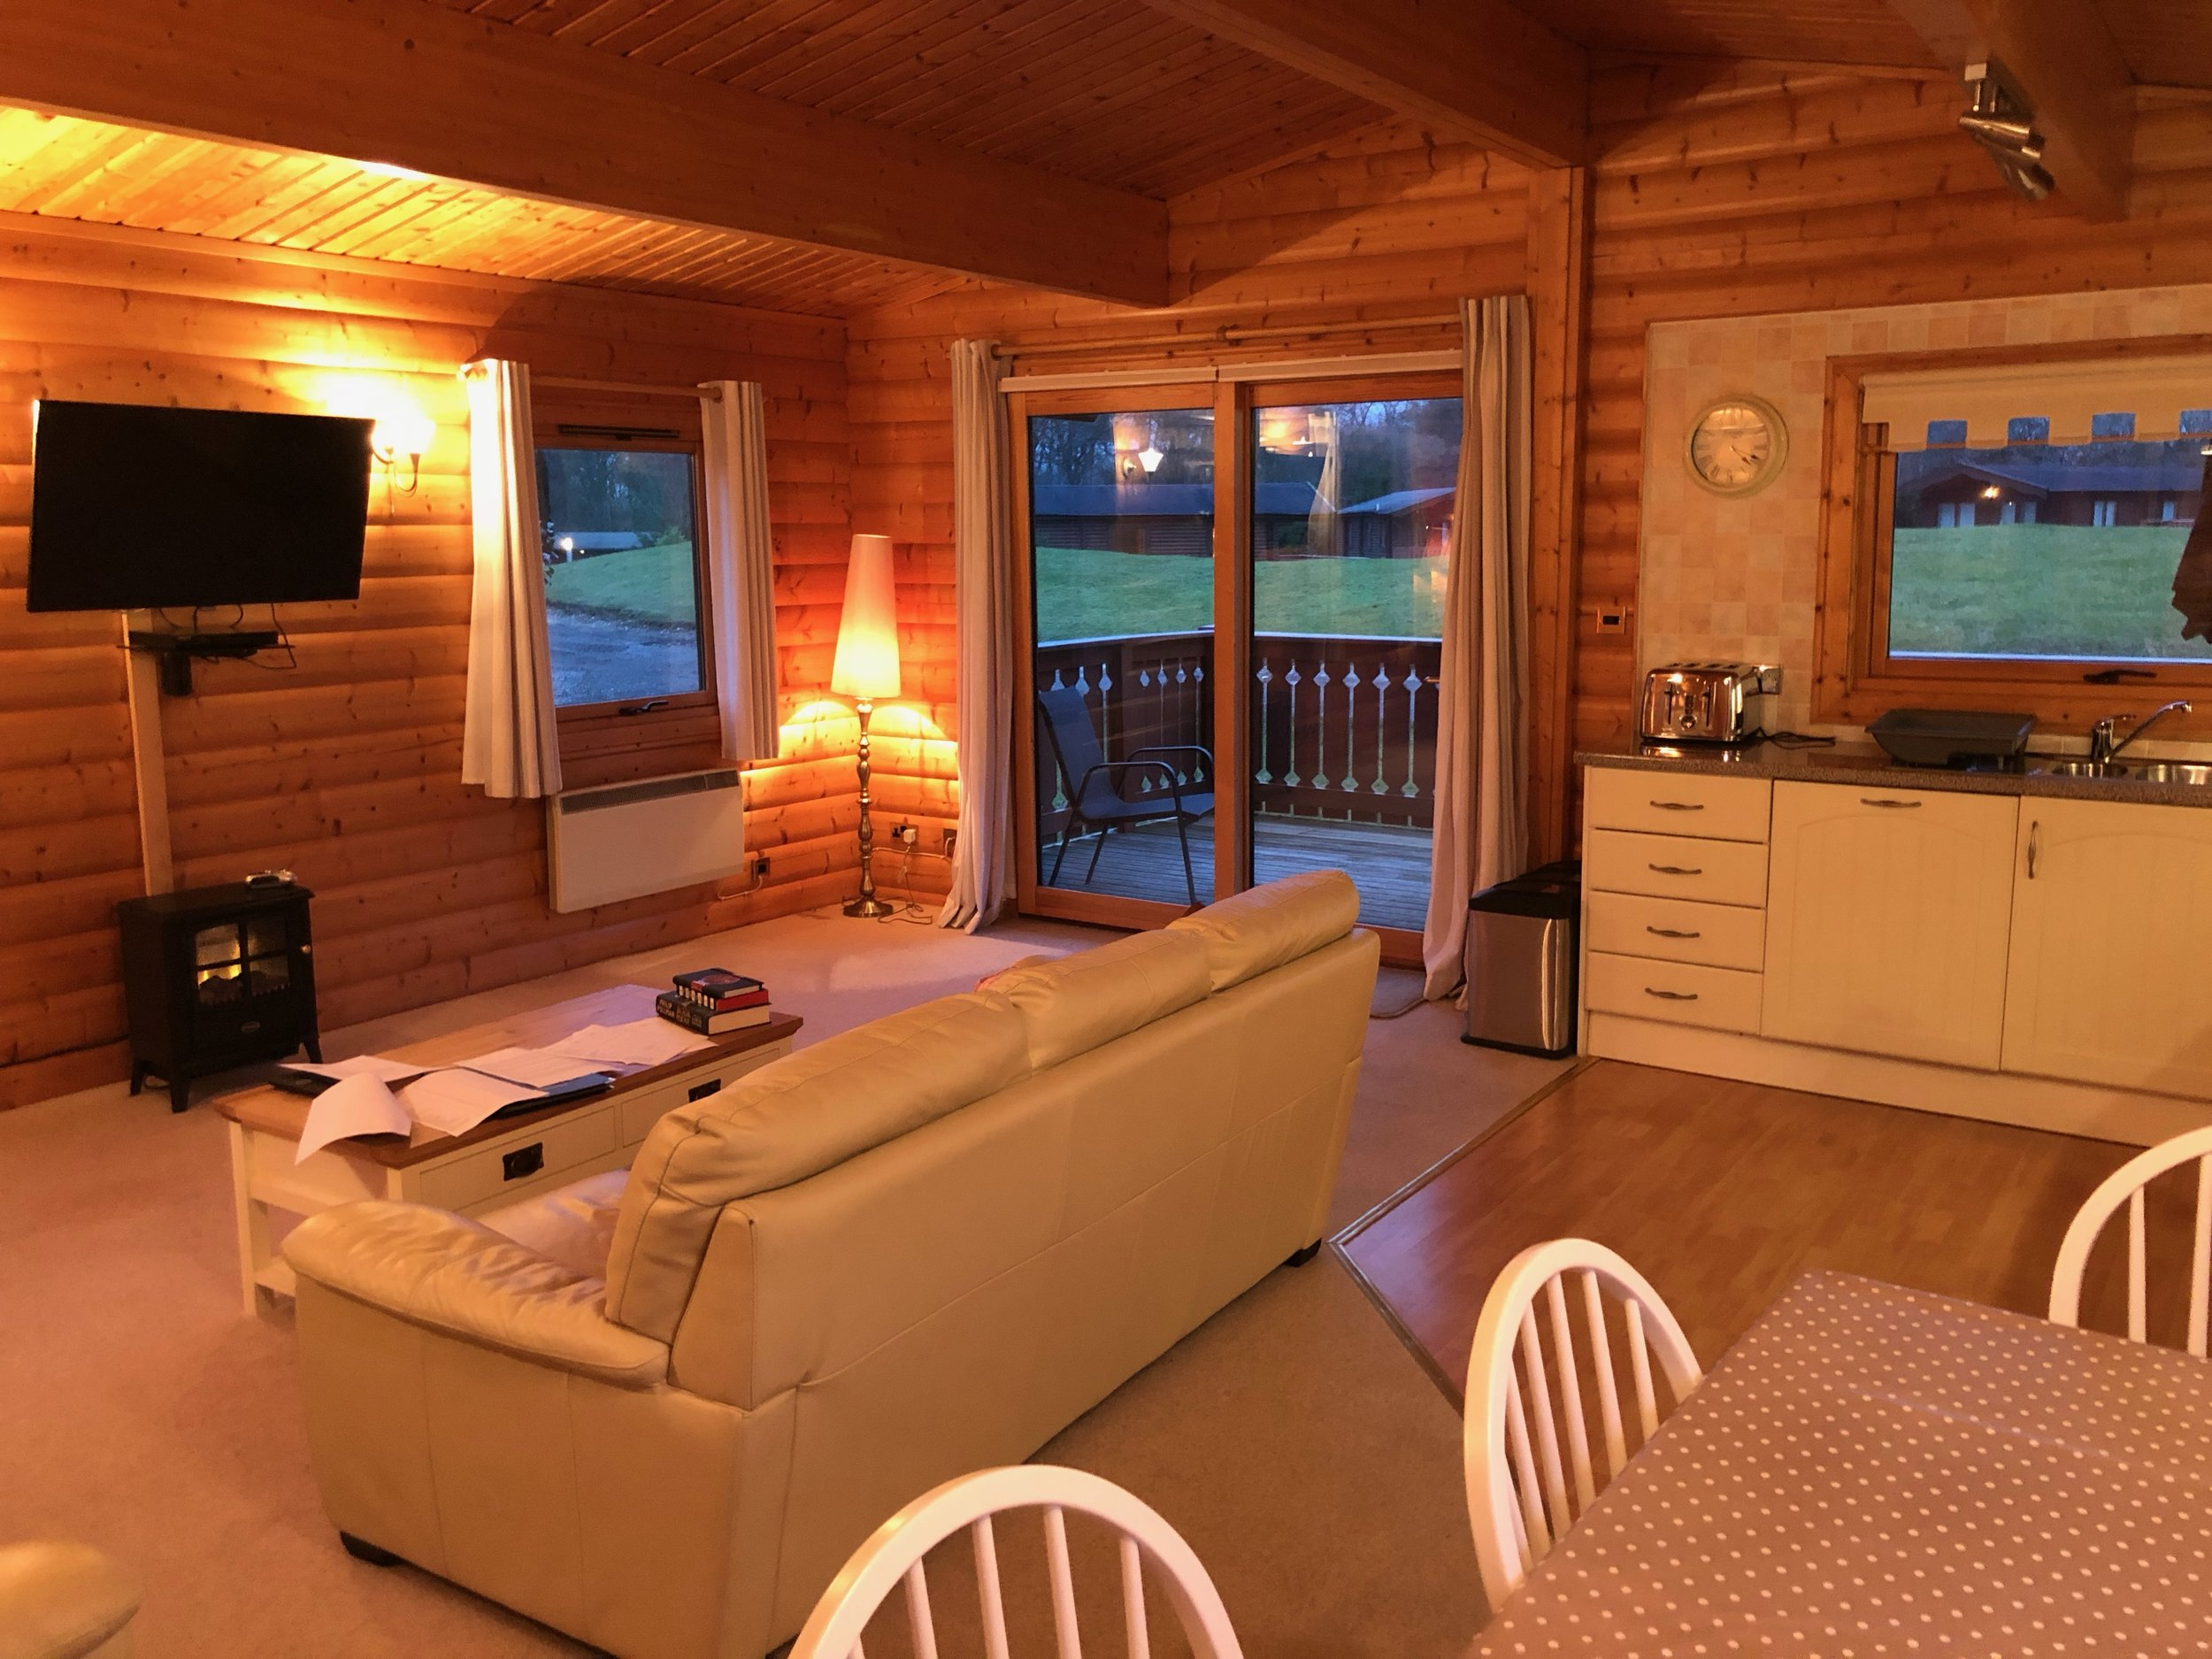 Beautifully equipped, costy lodges are ideal for cold winter evenings